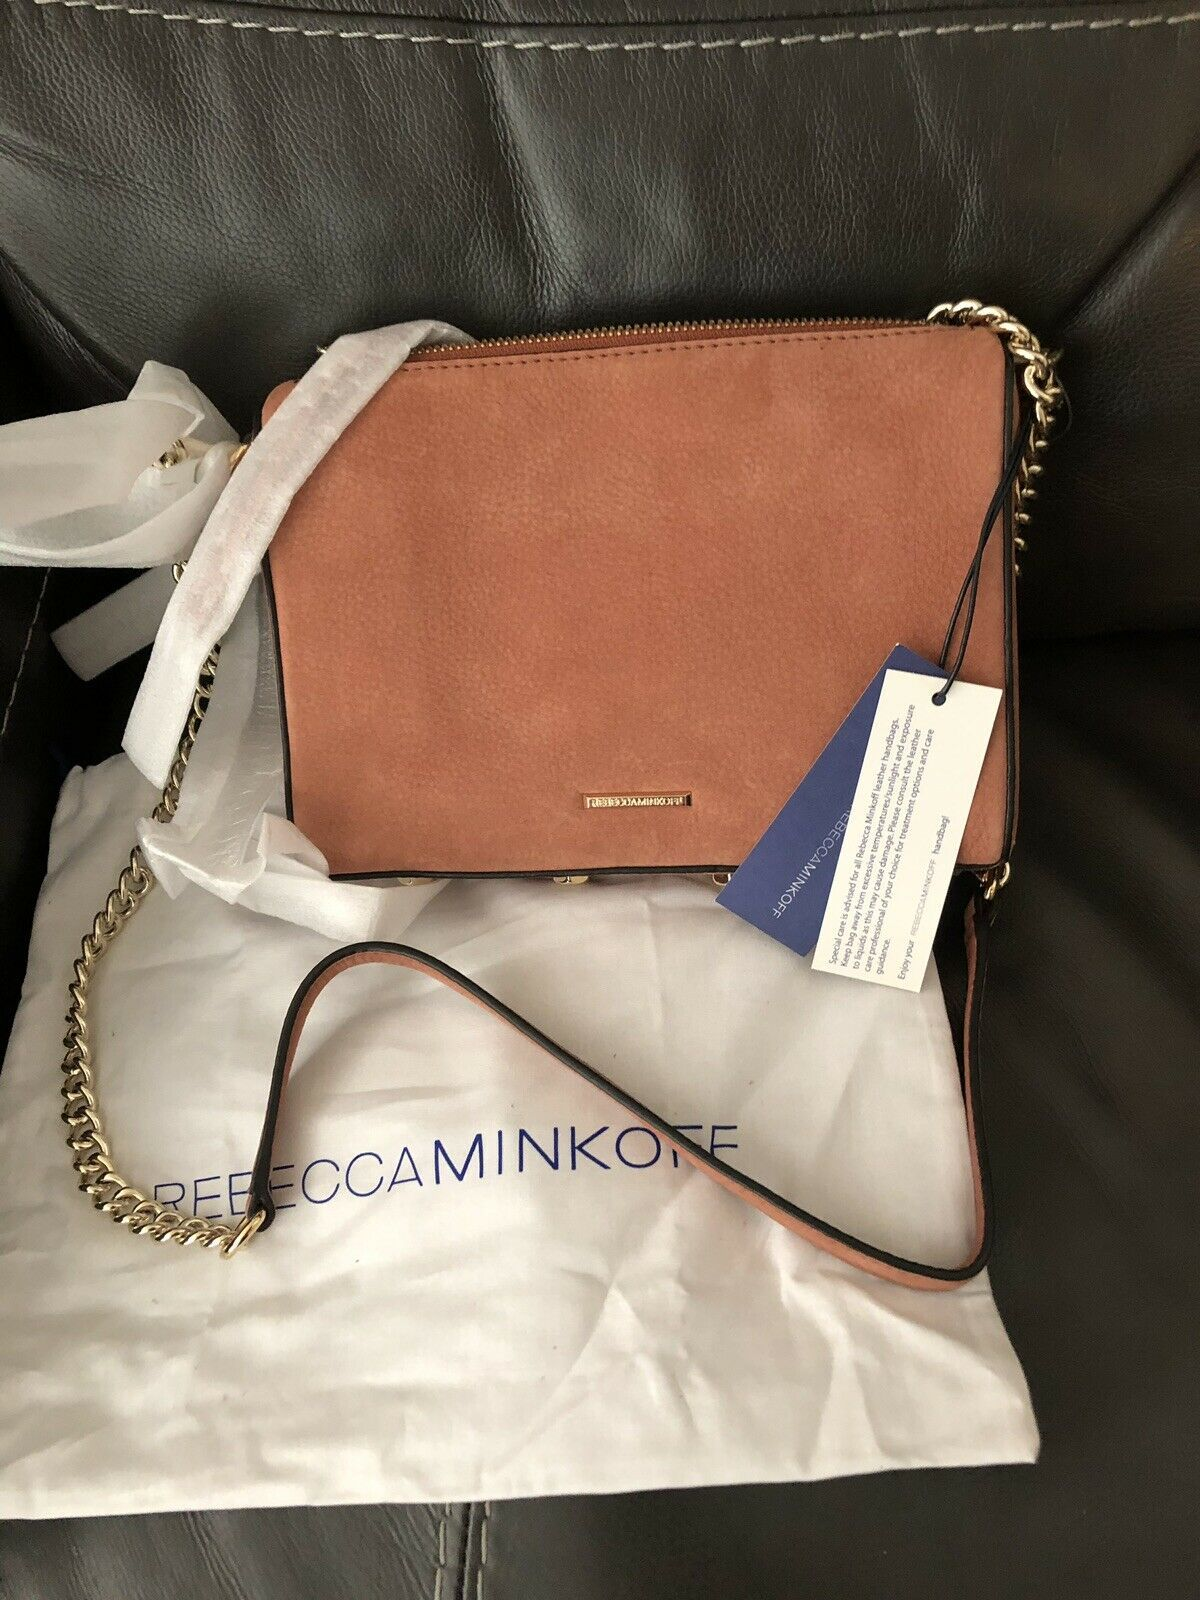 Primary image for Rebecca Minkoff Avery Nubuck Leather Crossbody Brick Bag Handbag Goldtone Hardw